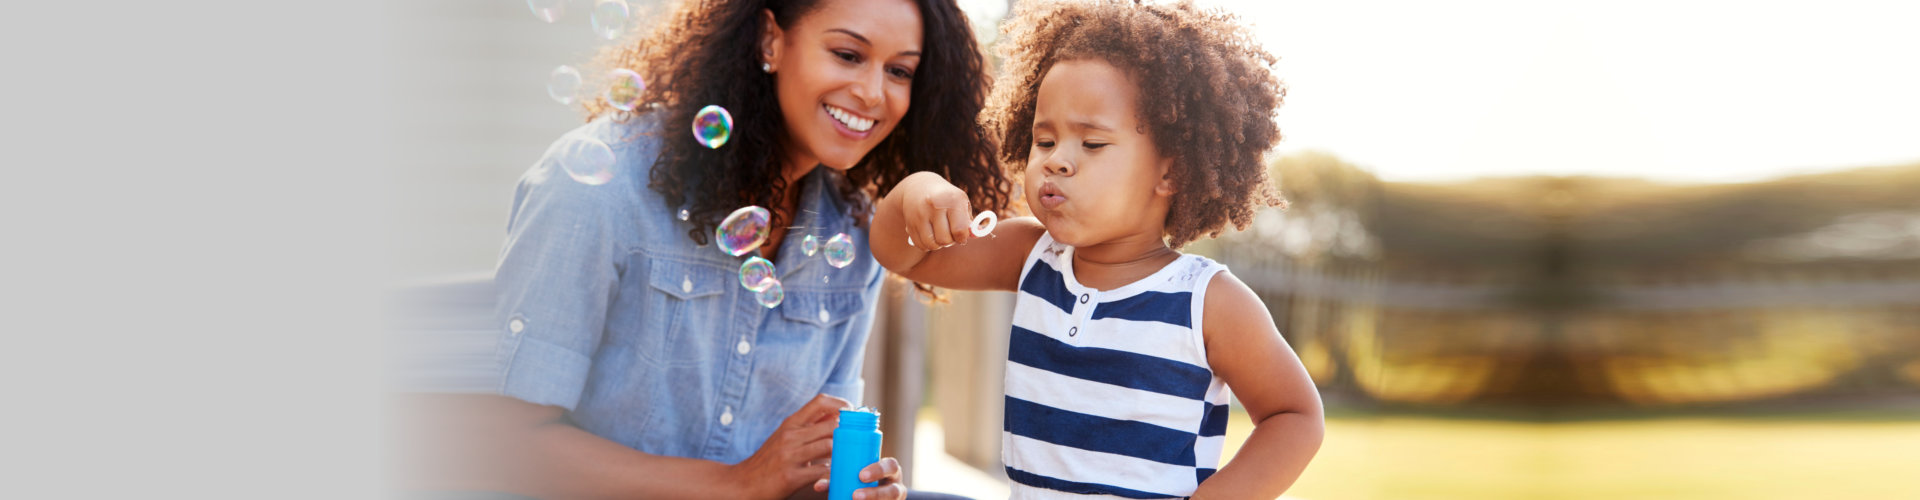 young woman looking a little girl blowing bubbles